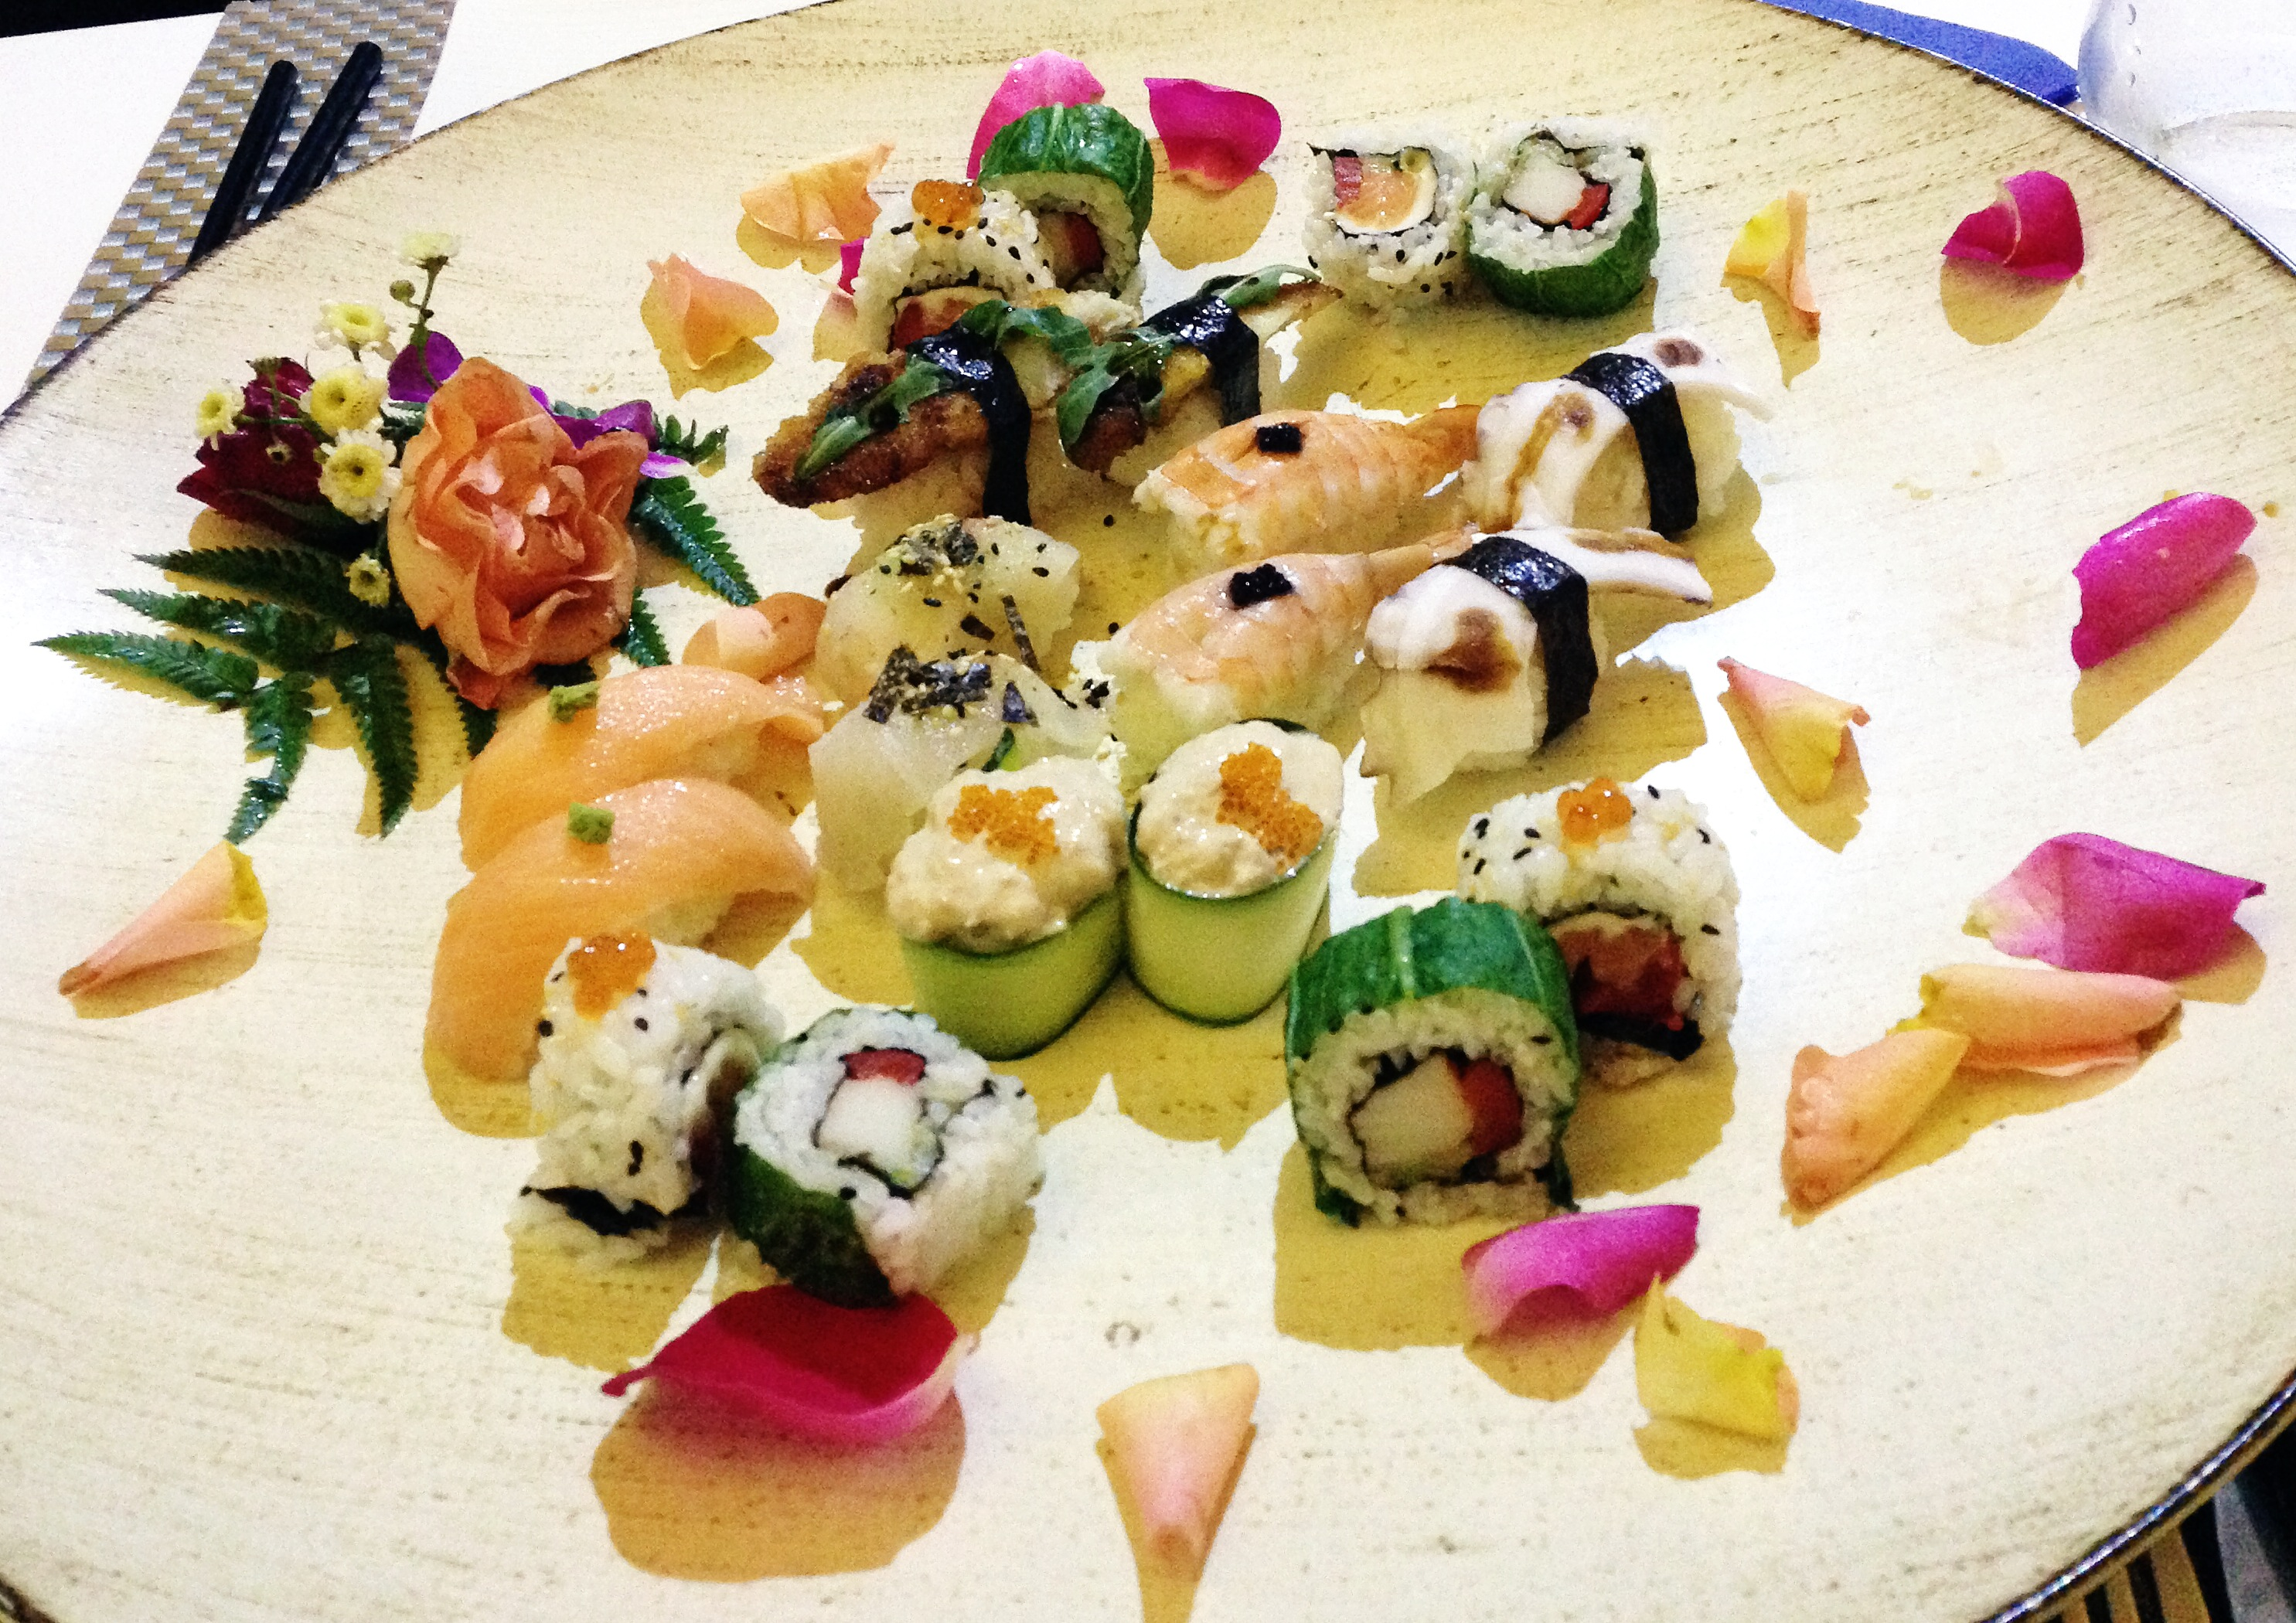 Asian Fusion, cucina malese a Torino | The Royal Taster